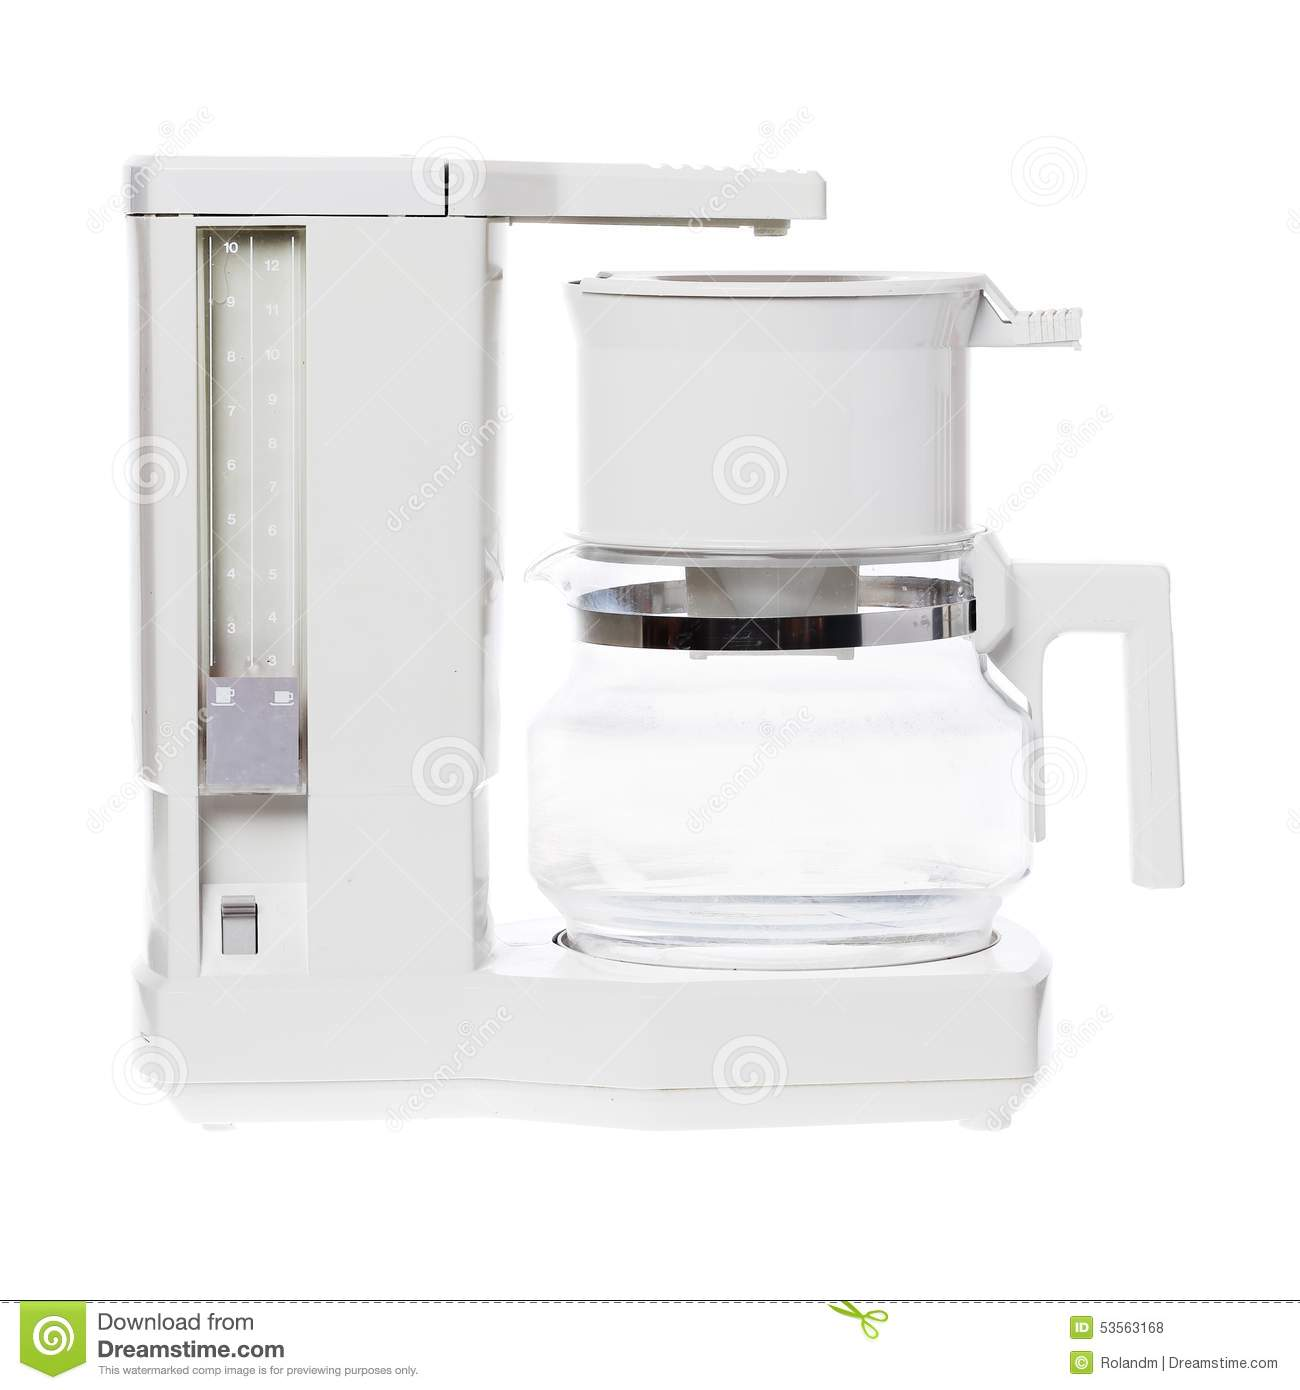 Electric Coffee Maker No Plastic : Coffe Maker Stock Photo - Image: 53563168